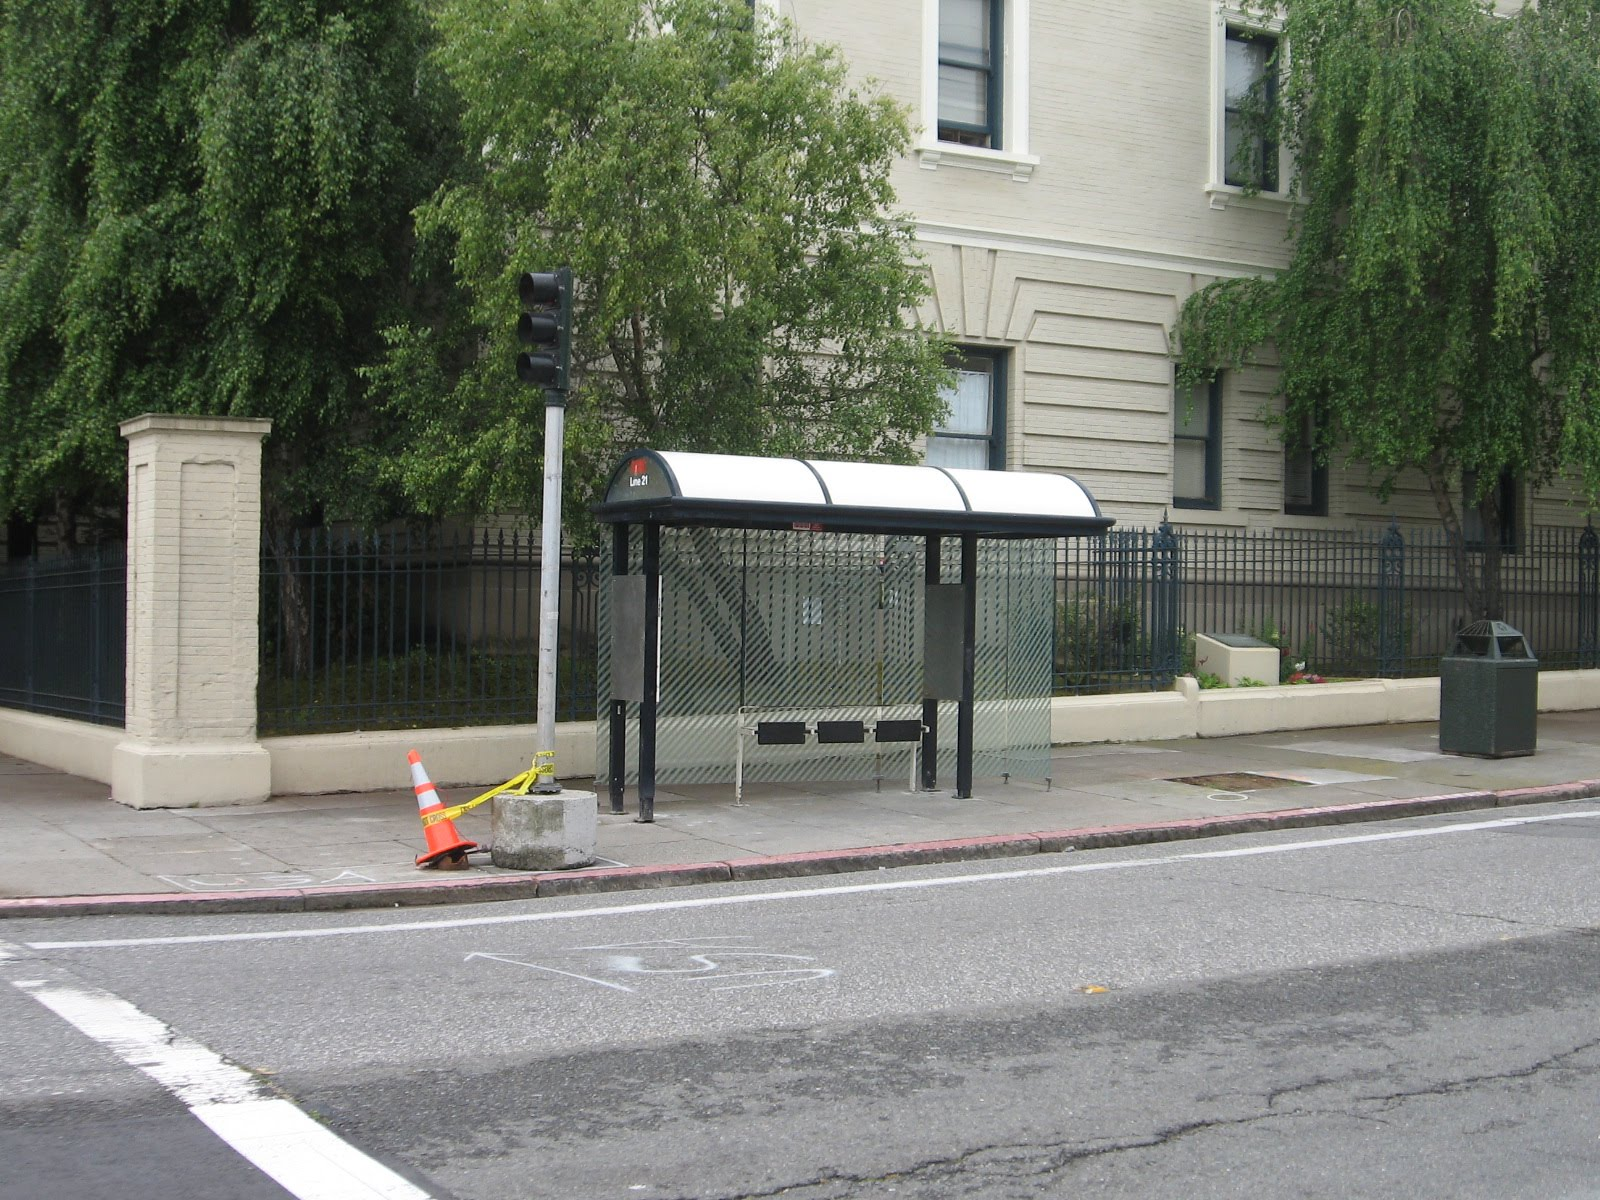 anti-homeless bus stop bench : pics